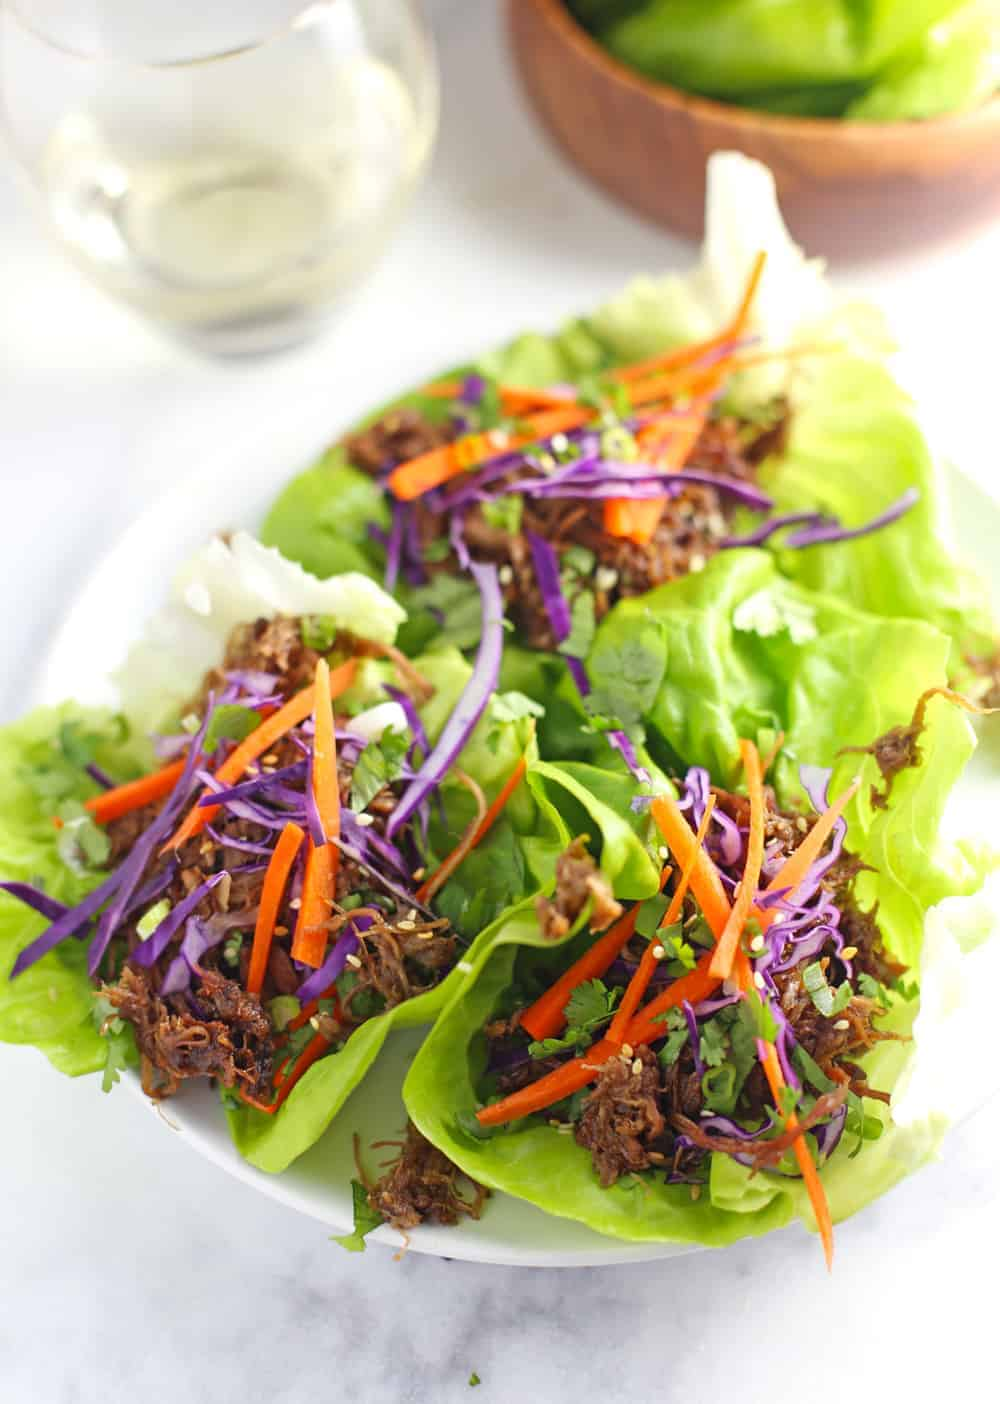 Smoked Pulled Pork Lettuce Wraps with Asian Dipping Sauce. A fantastic, and light, use for leftover pulled pork.